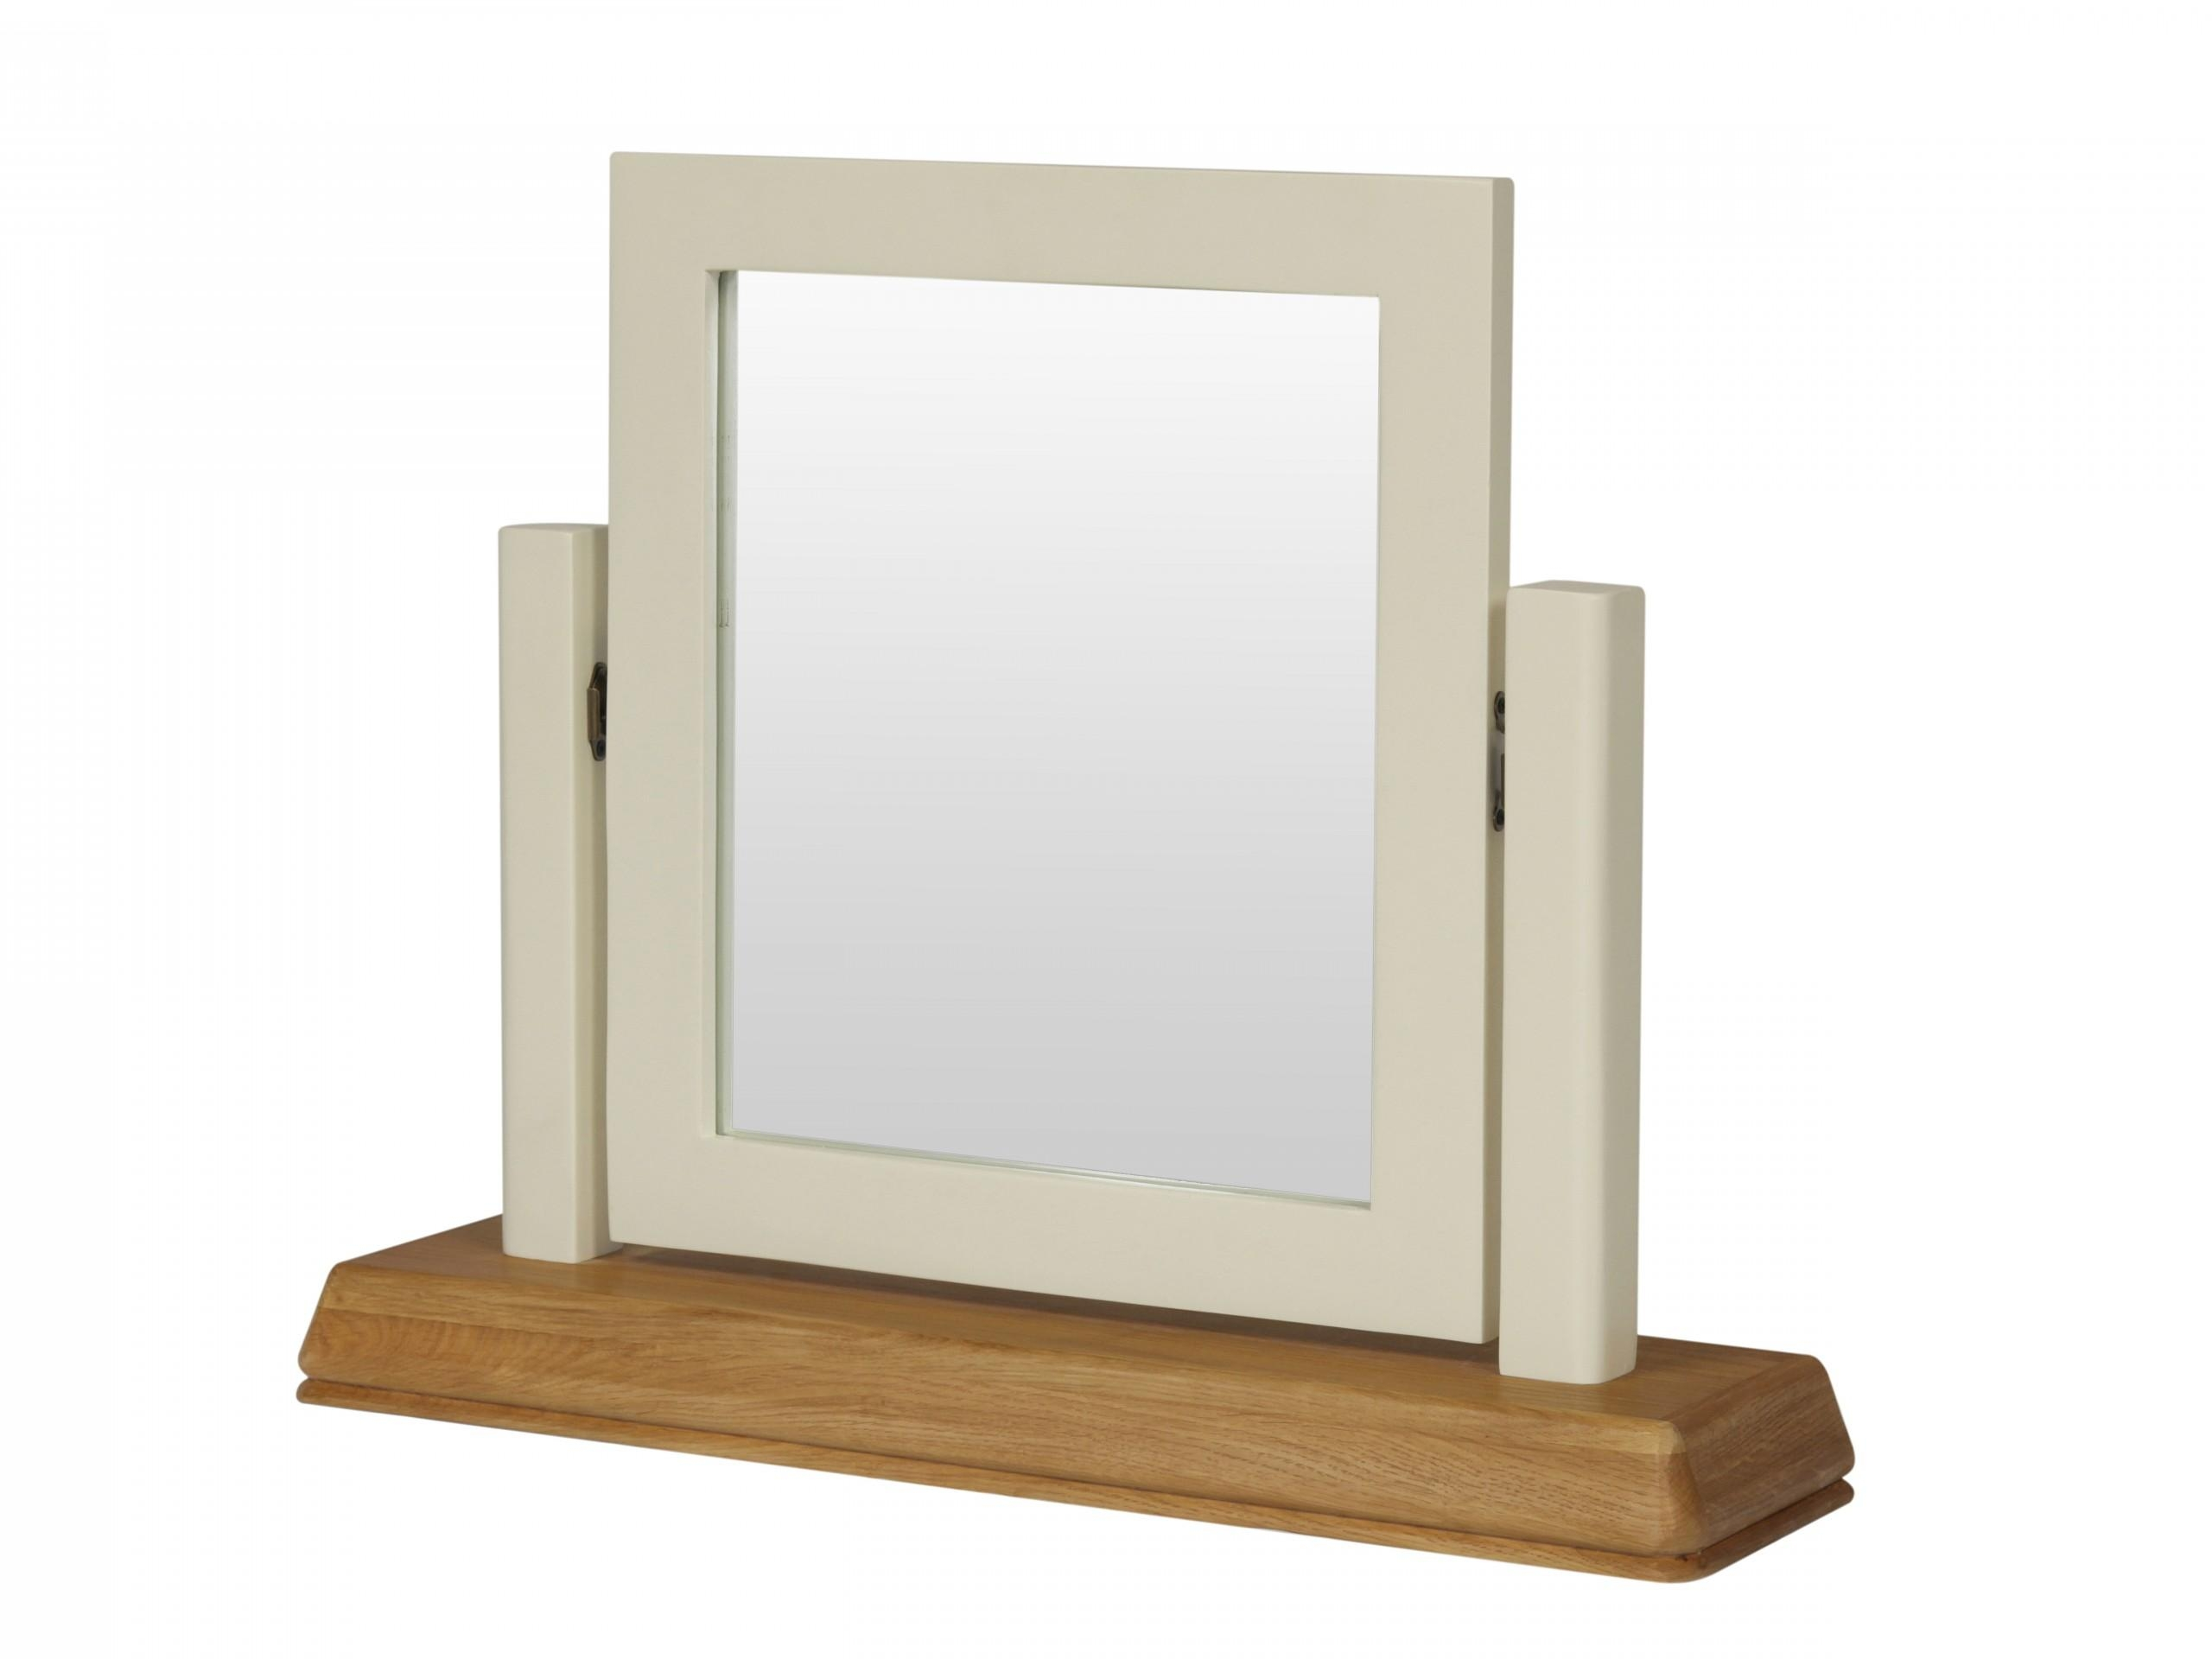 Farmhouse Country Oak Cream Painted Dressing Table Mirror For Dressing Table Mirror (Image 7 of 20)